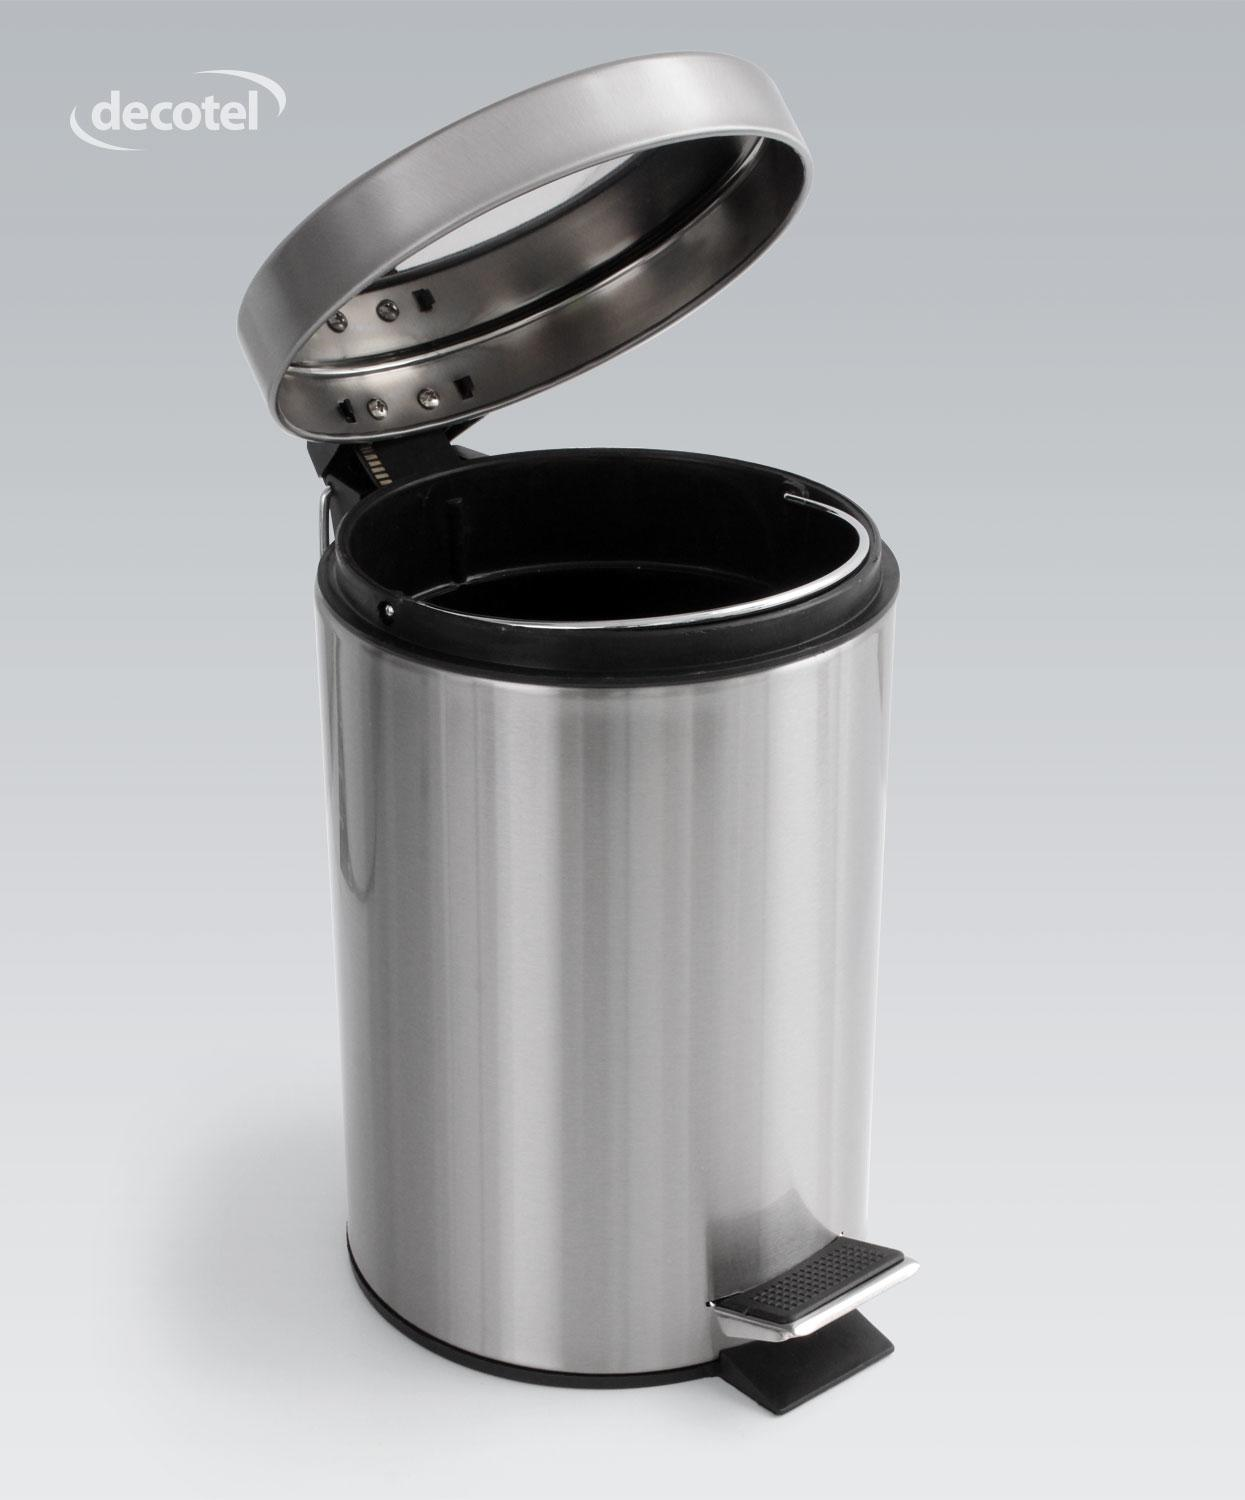 Decotel chrome steel bathroom pedal bin